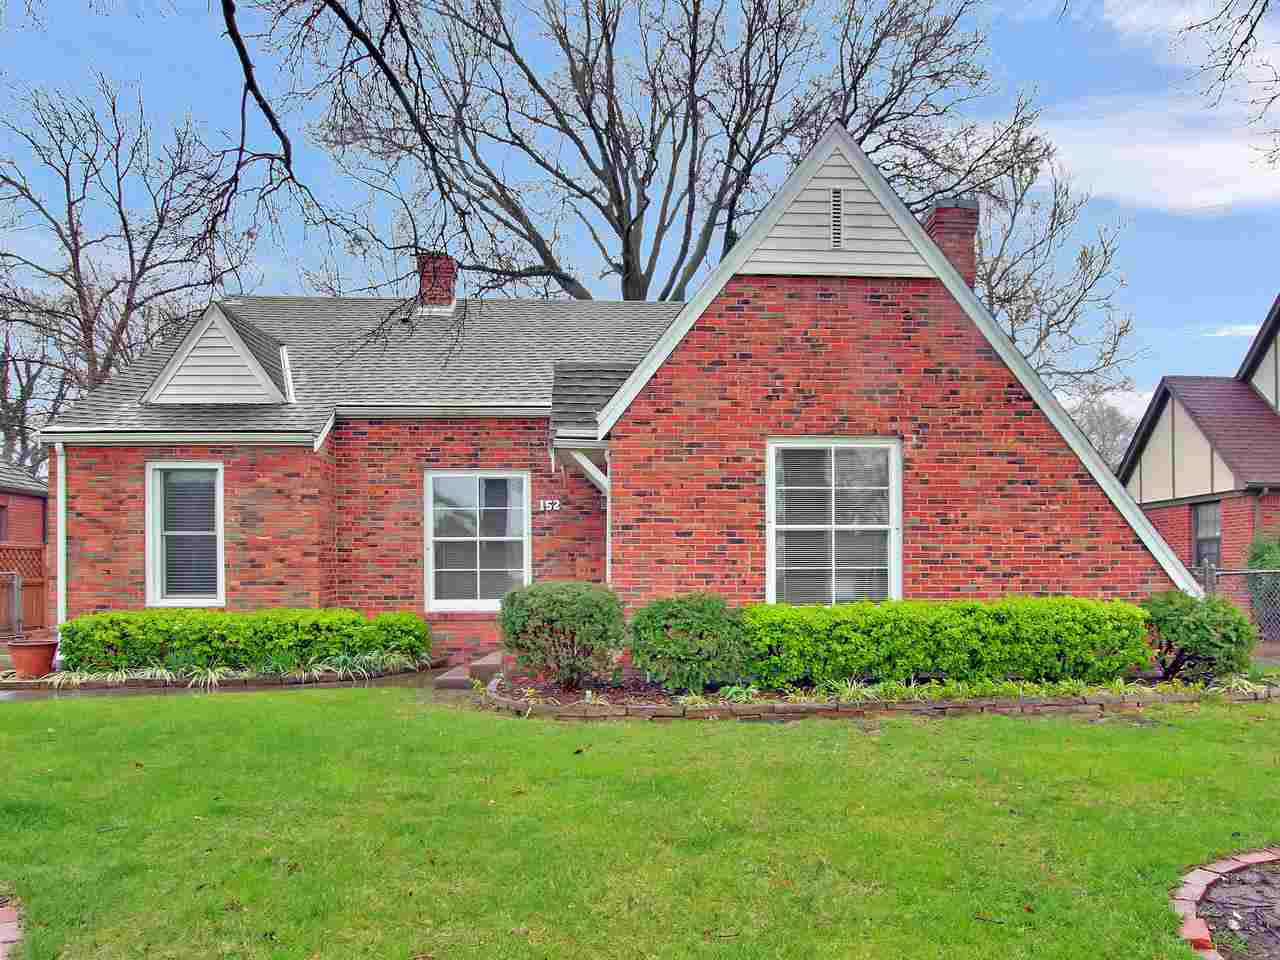 This home is a charmer…from the tall oak trees to the brick exterior to the newly refinished hardwood floors.  Walk into the spacious living room and notice the big windows, beautiful woodwork and decorative fireplace.  Host your friends and family at your big table in the formal dining room.  The hardwood floors continue into the dining room and down the hall to the master bedroom.  There are two more bedrooms and one bathroom on the main floor.  The kitchen has been updated with white cabinetry and newer appliances.  There is additional space in the kitchen for another table.  The entertaining space continues into the backyard with a brick patio underneath one of the larger oak trees in Wichita.  The basement has one finished room with a cedar closet and a large laundry room with large built in shelves for storage.  This home has been well maintained and there are many updates including: newly refinished hardwood floors and interior paint in 2020;  new sewer line with backflow preventer in 2017; new garage door in 2015; new sprinkler system panel in 2014; new Trane HVAC in 2010, new garage door opener in 2009, new Gutter Helmet in 2007; and new roof in 2006.  Bring your family and make this your home!